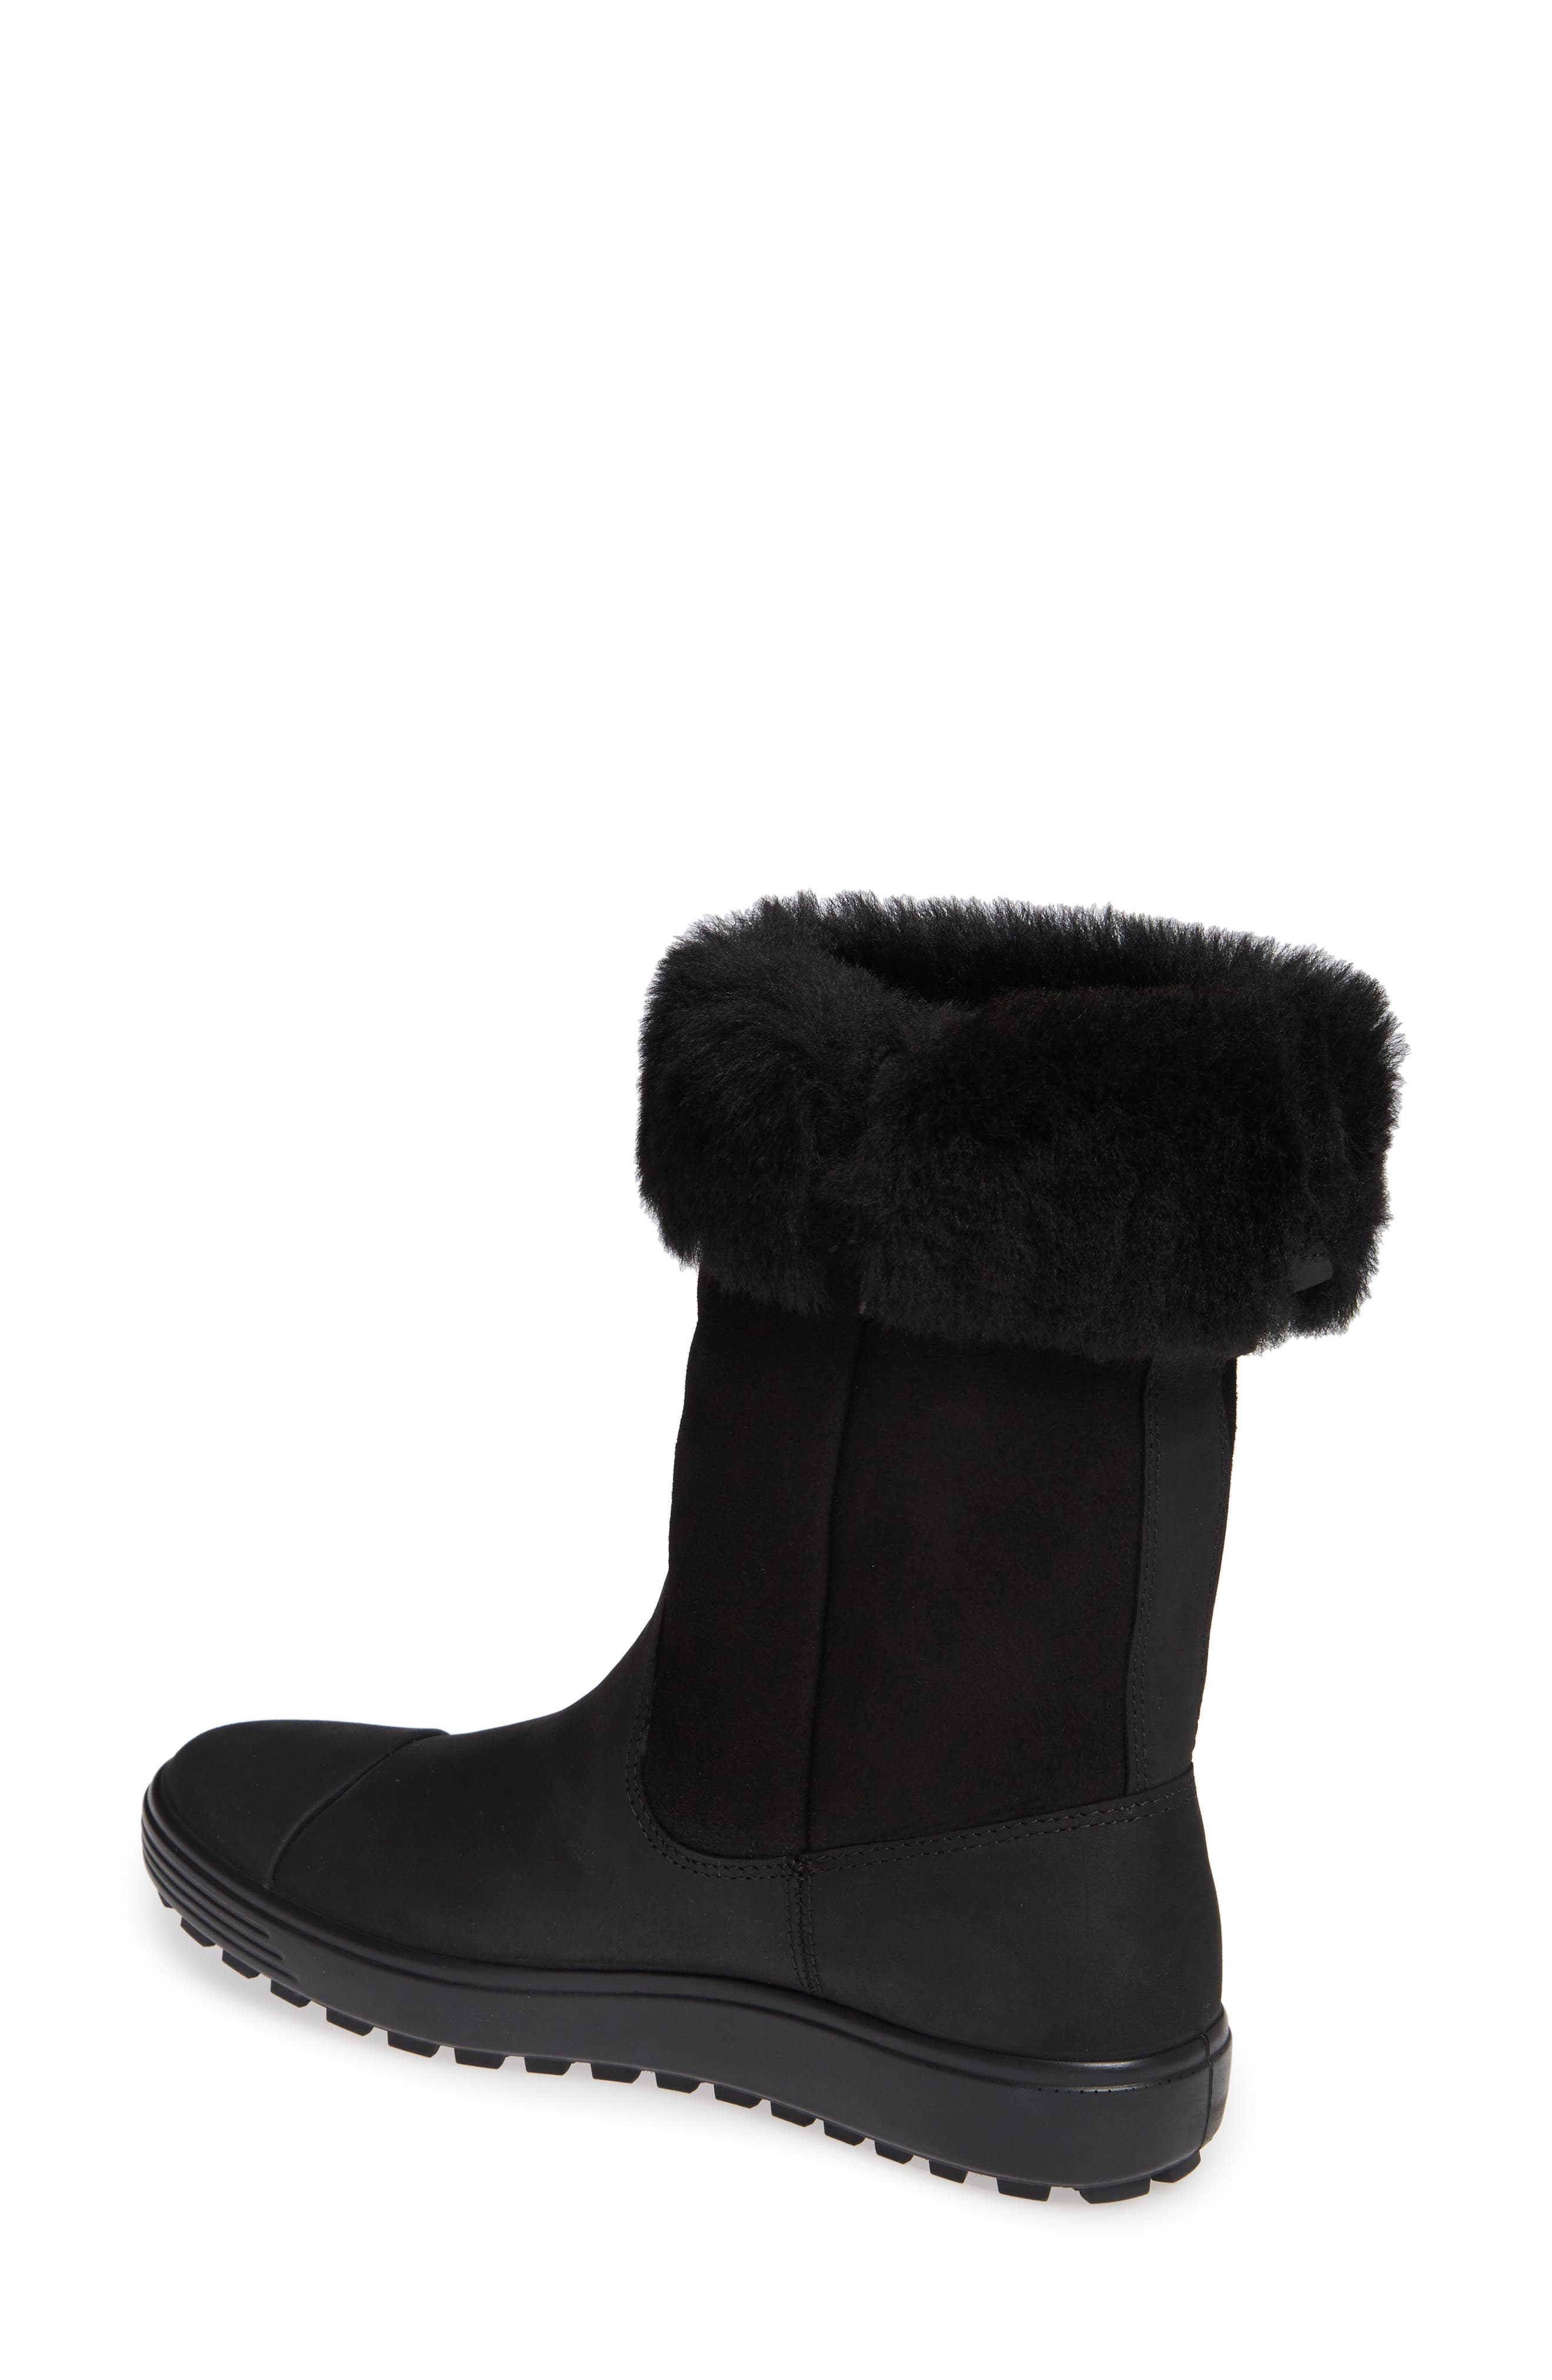 Soft 7 Tred Waterproof Genuine Shearling Lined Boot,                             Alternate thumbnail 3, color,                             BLACK NUBUCK LEATHER